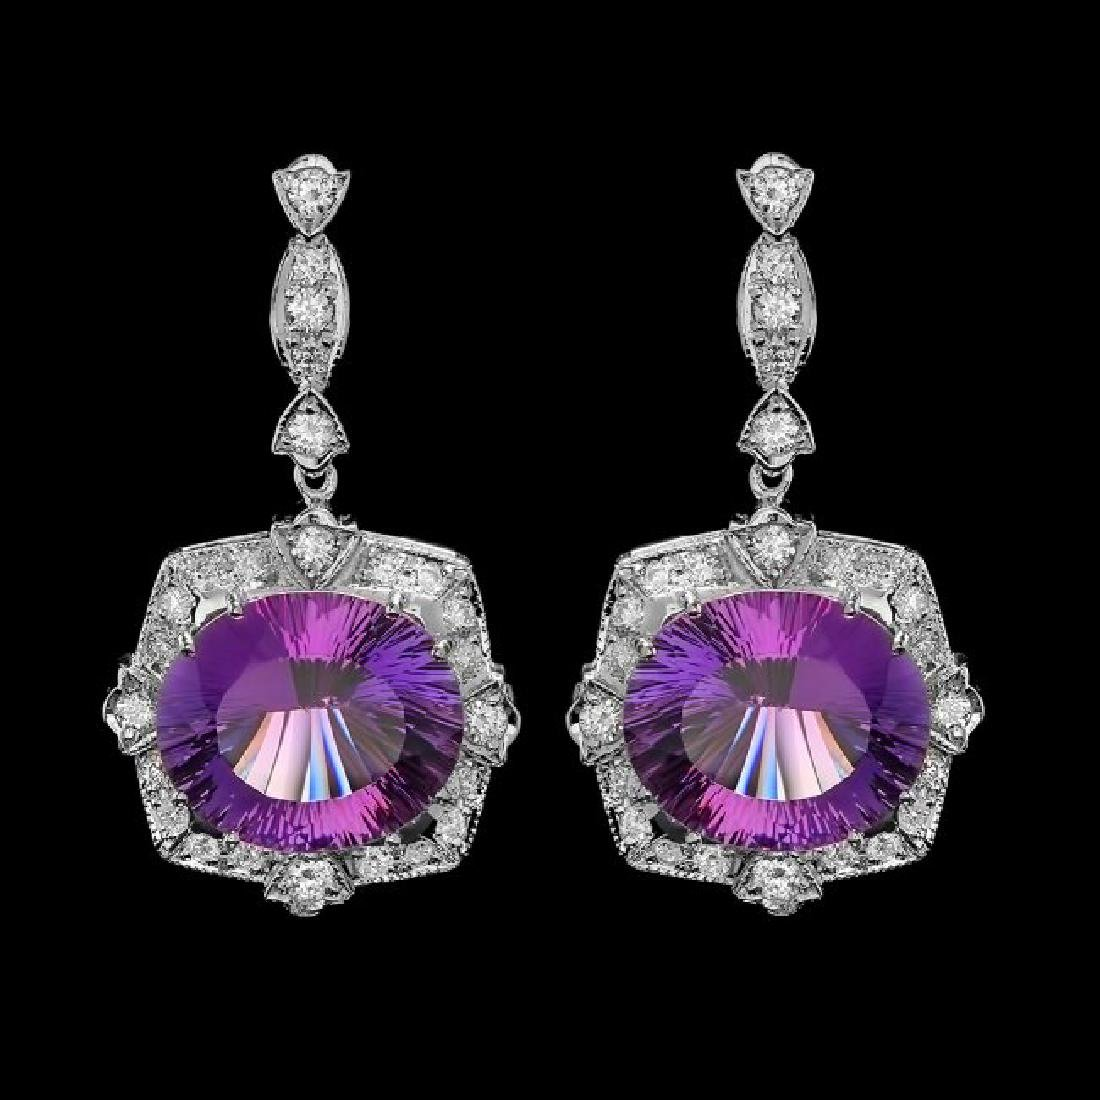 14k Gold 18.00ct Amethyst 1.90ct Diamond Earrings